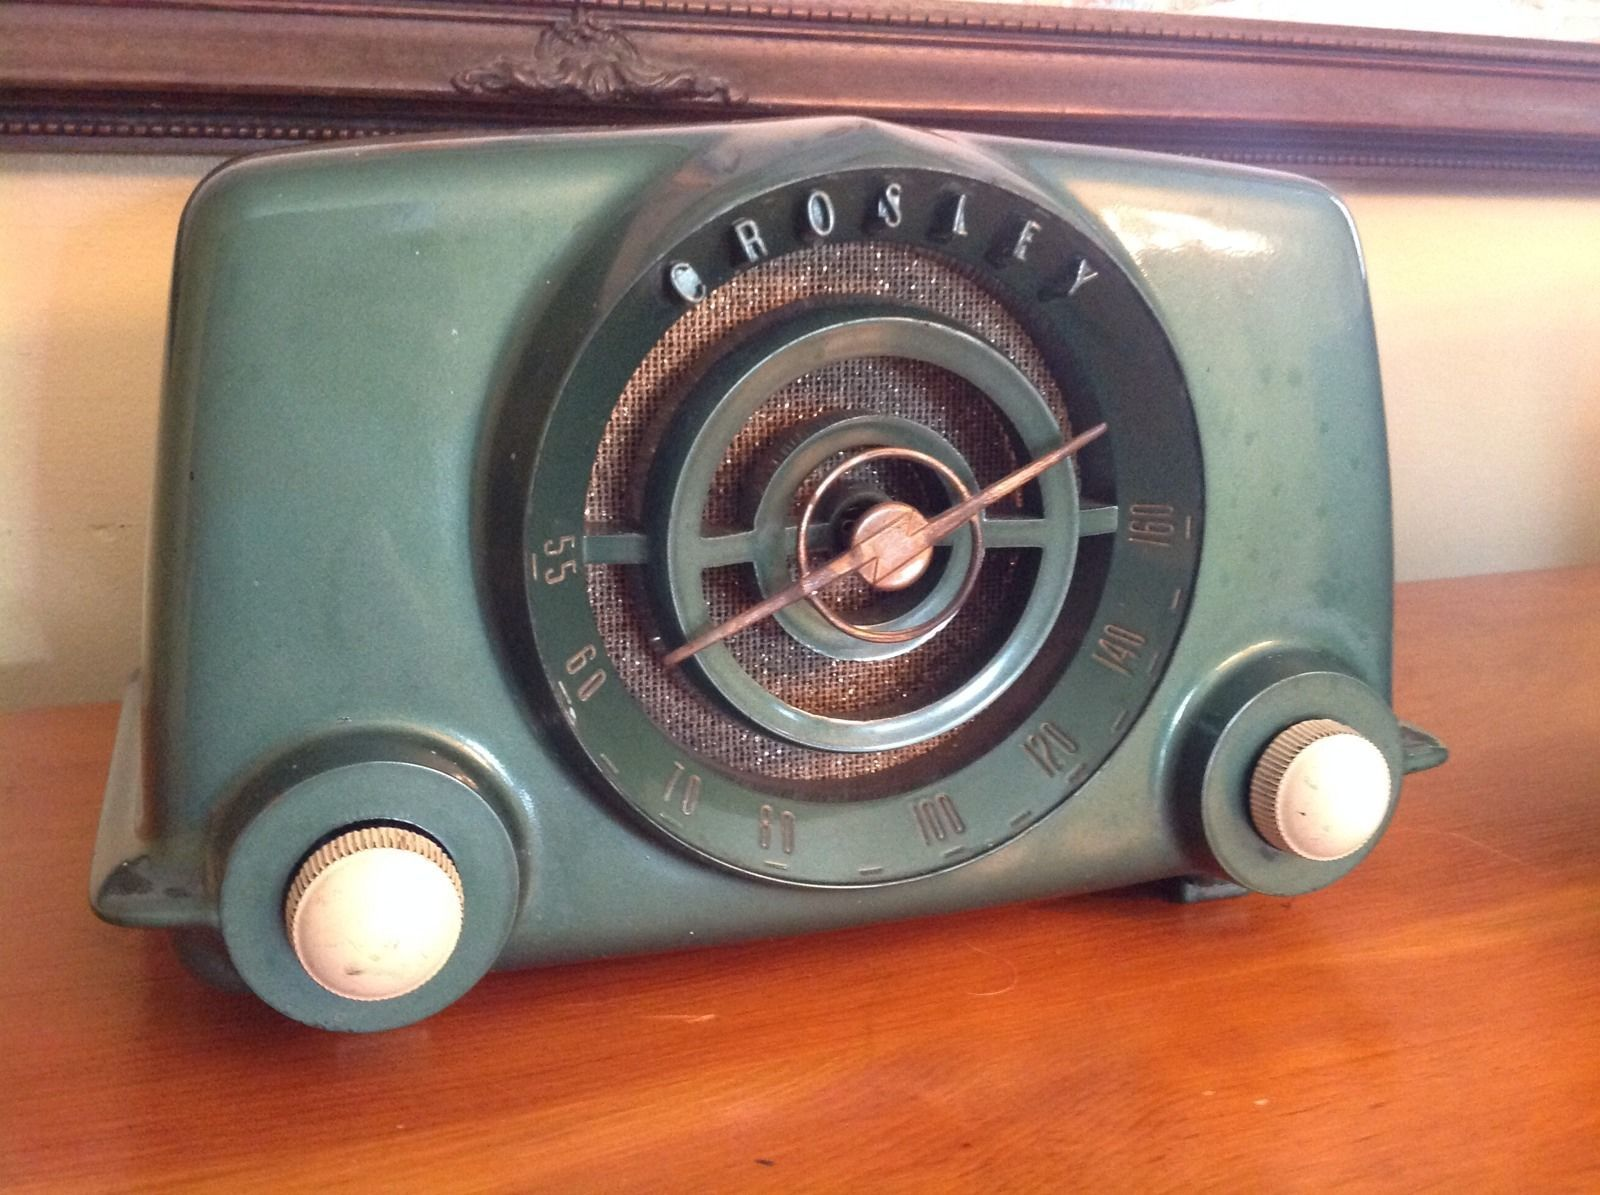 Crosley Radio Vintage Crosley Radio Model 11 102 U Green Double Knob Tube Radio